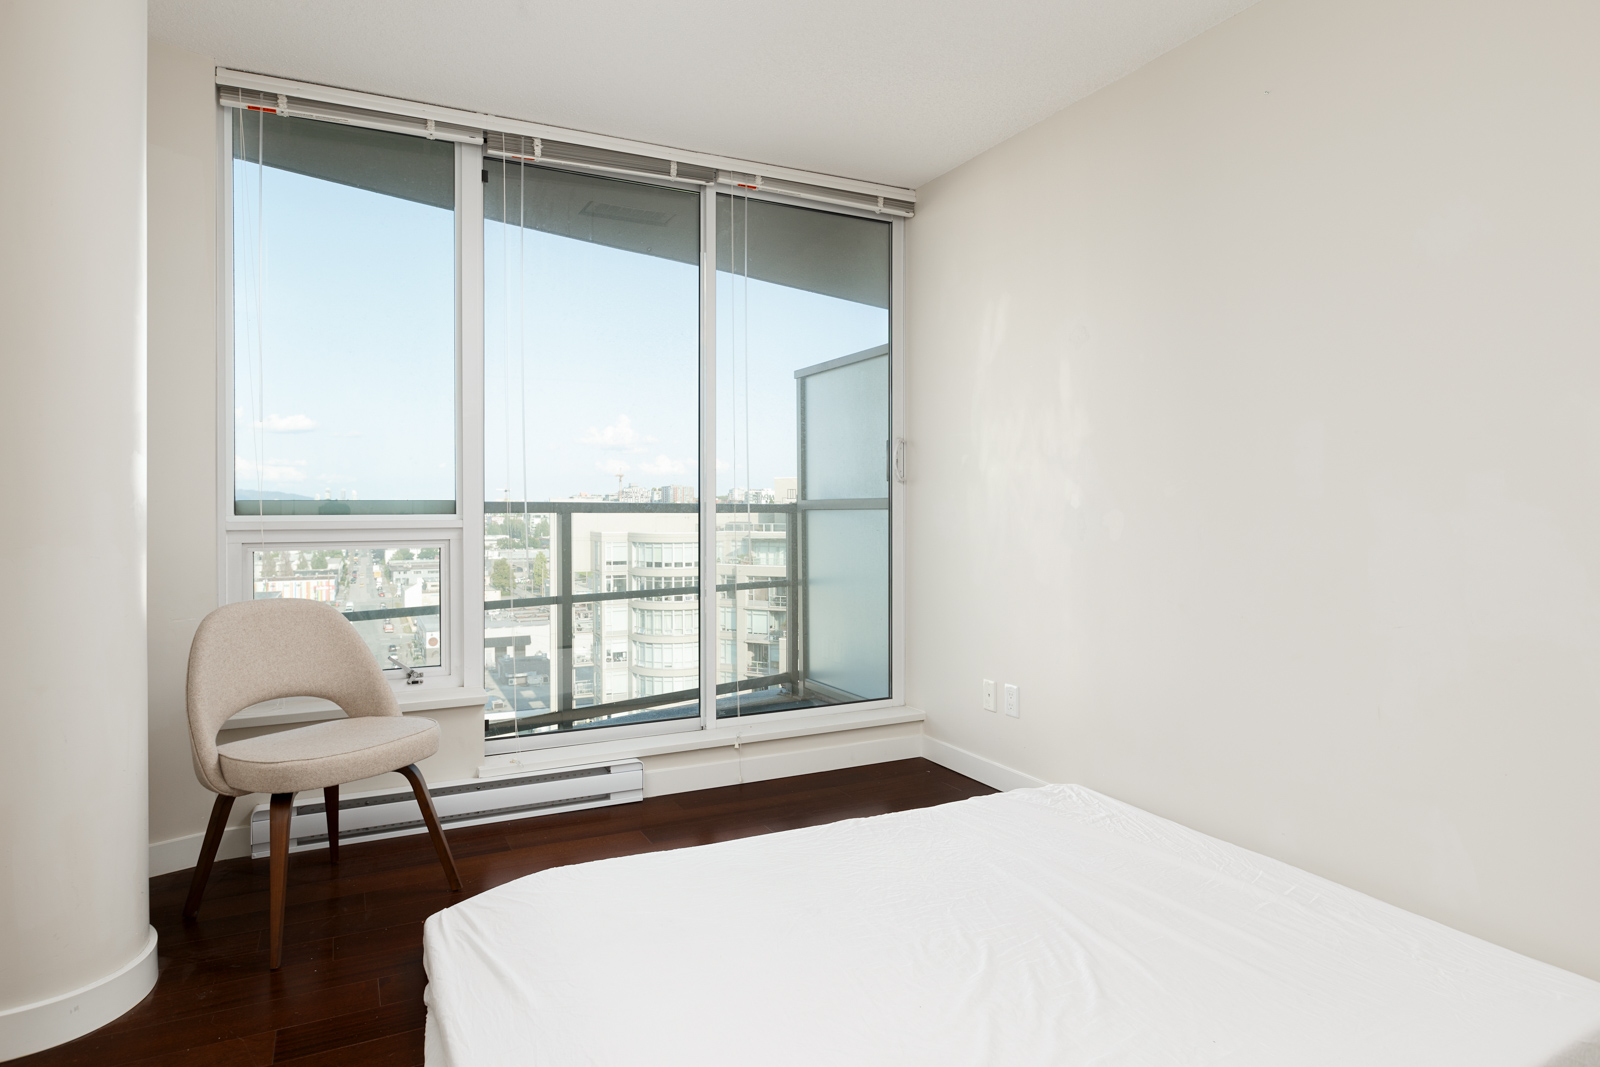 Bedroom opening up onto balcony of Vancouver high rise rental condo.